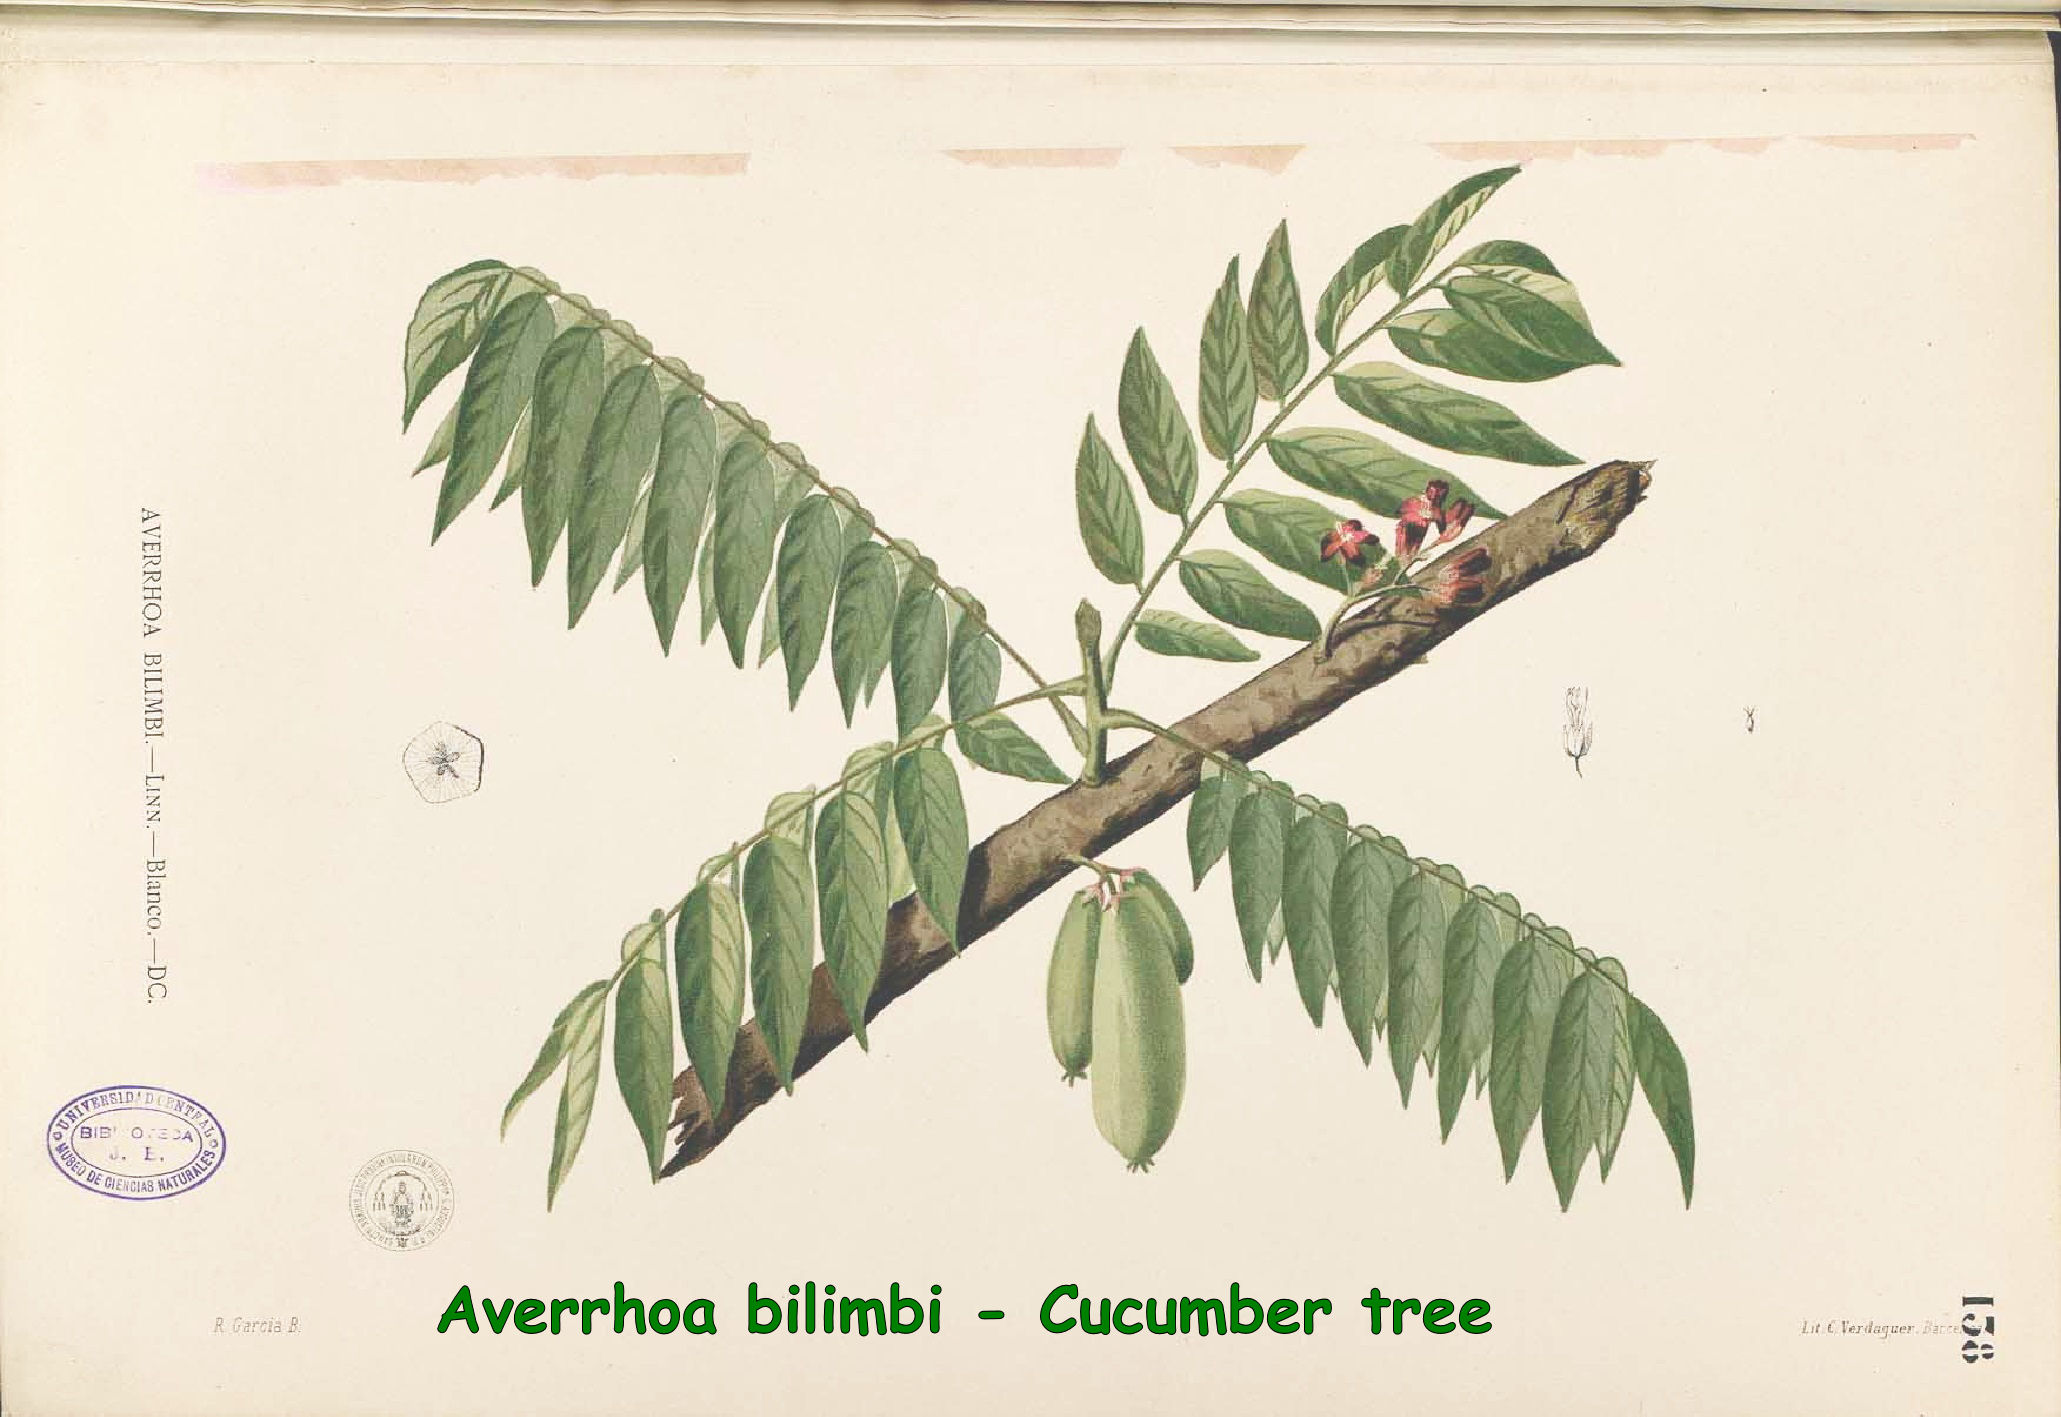 Averrhoa bilimbi - Cucumber tree